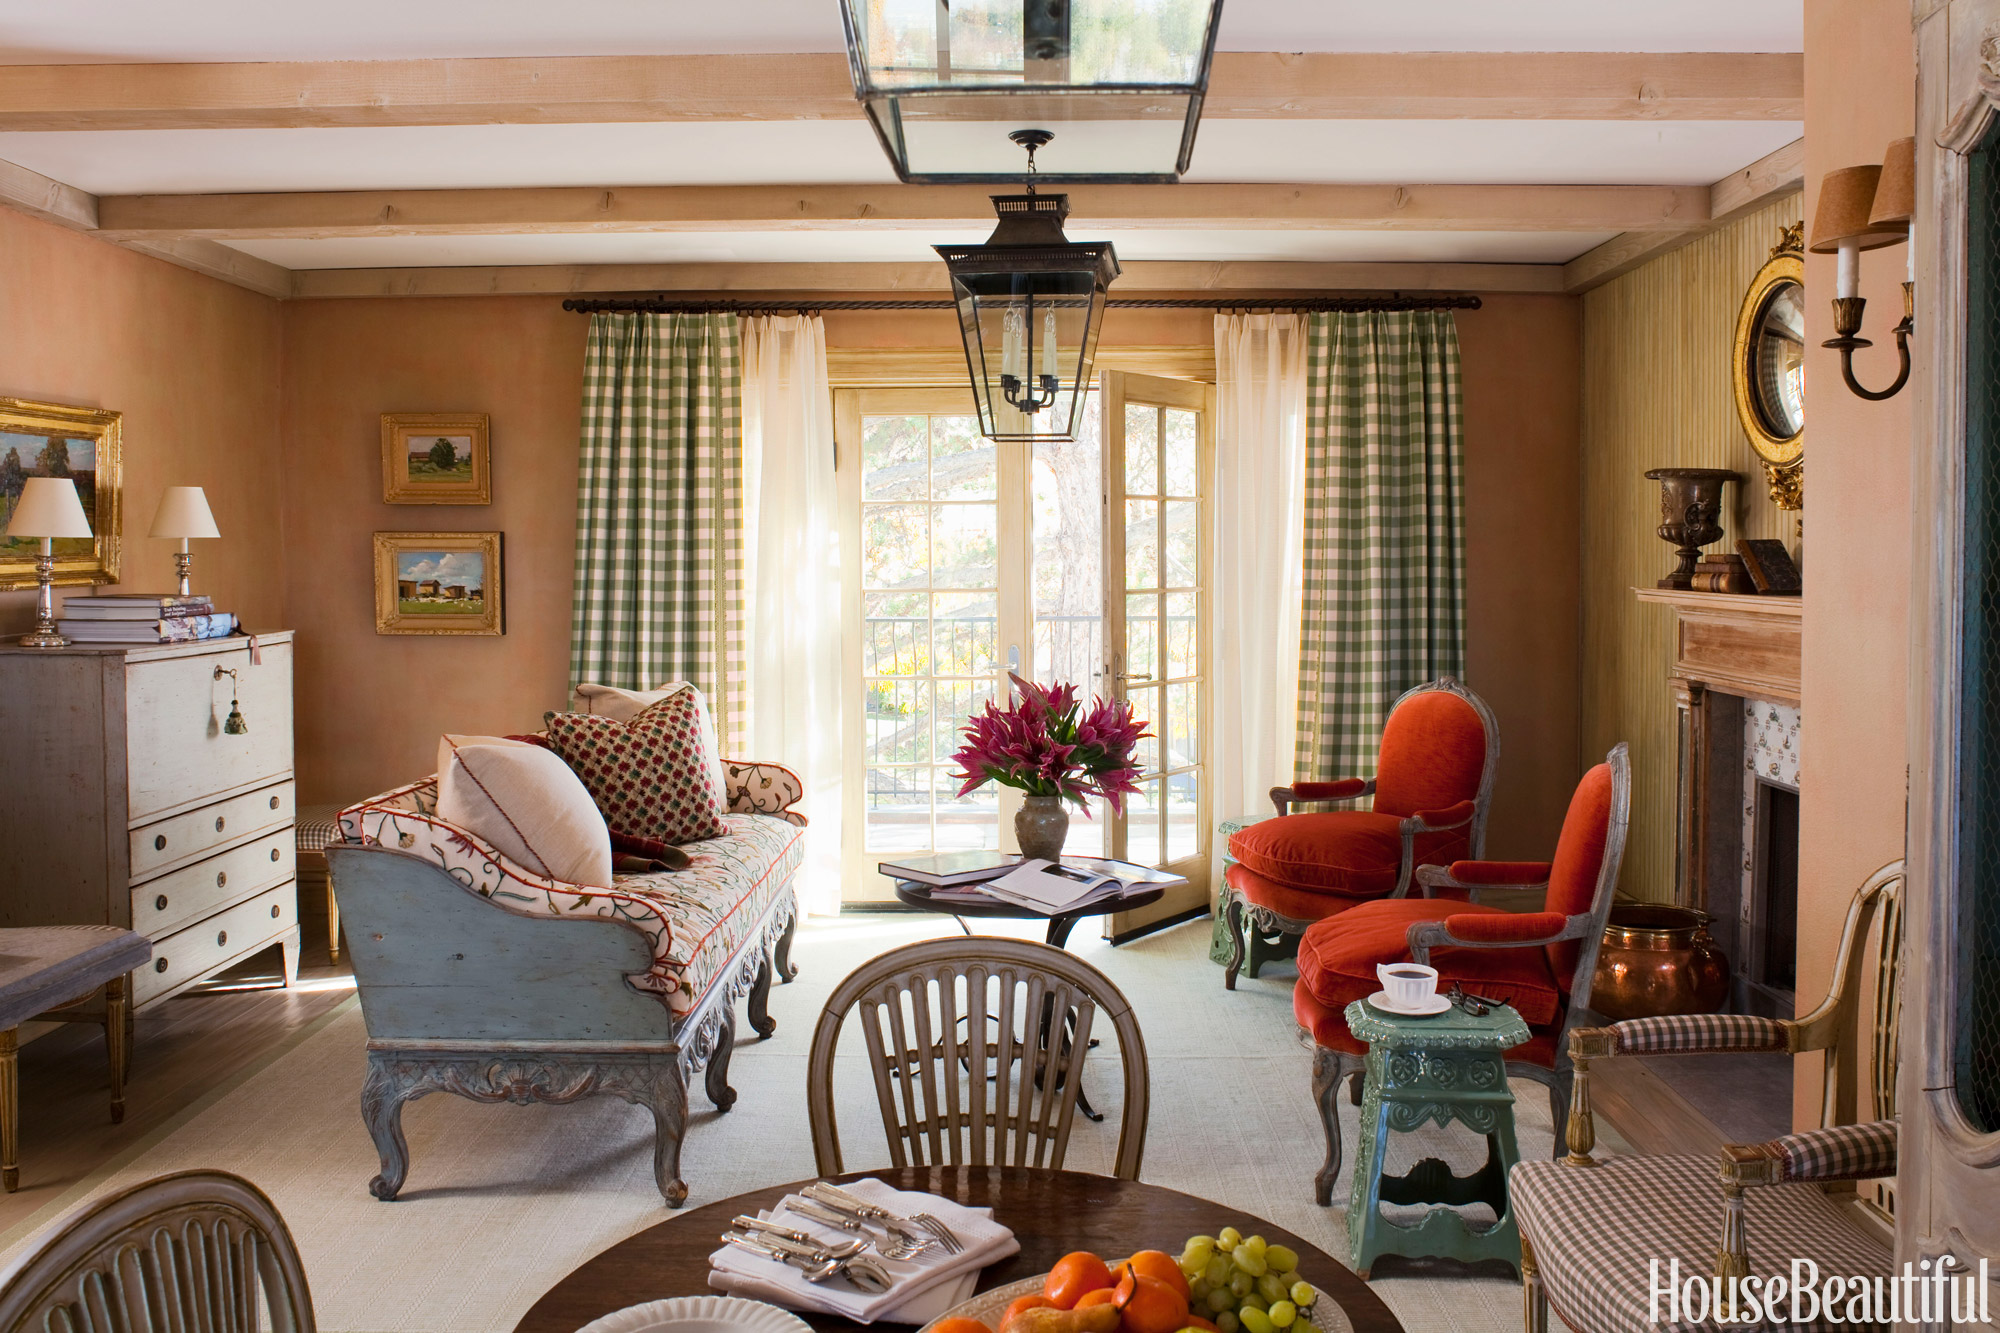 Decorating ideas for small spaces how to organize a - Design small living room space ...